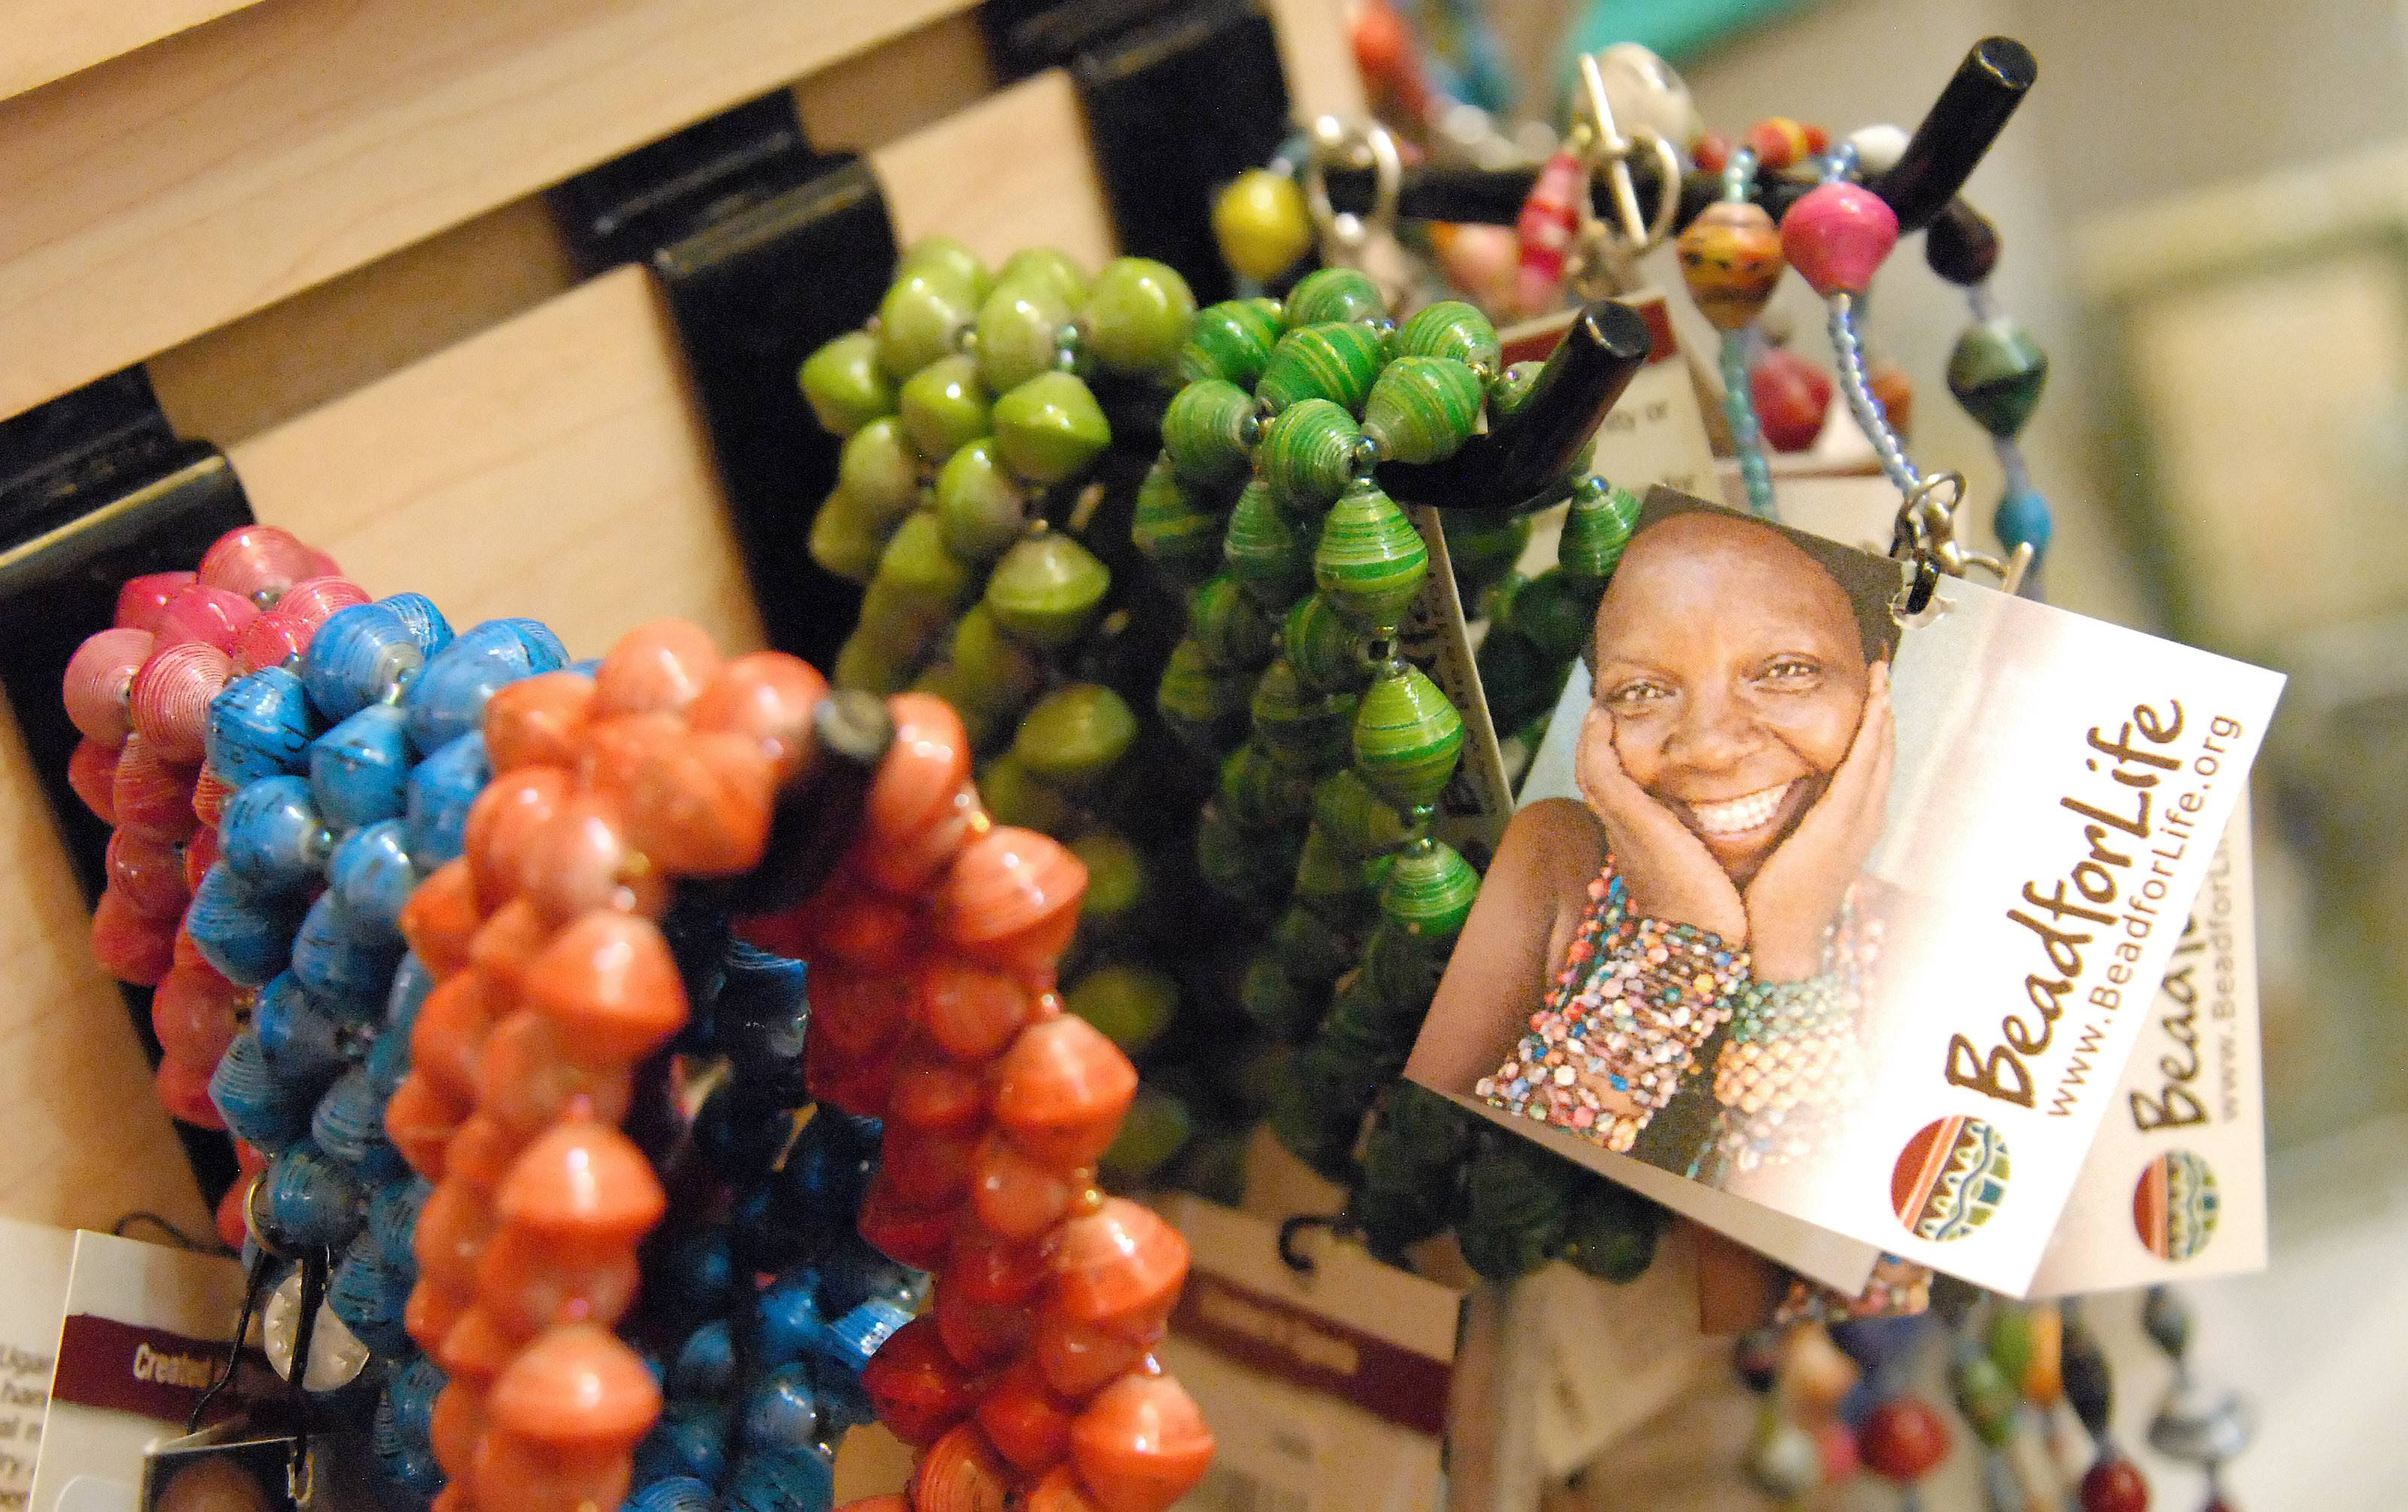 The Little Traveler in Geneva has added a Fair Trade Gallery to its many departments. Items include jewelry, bags, soaps, home decor and more.